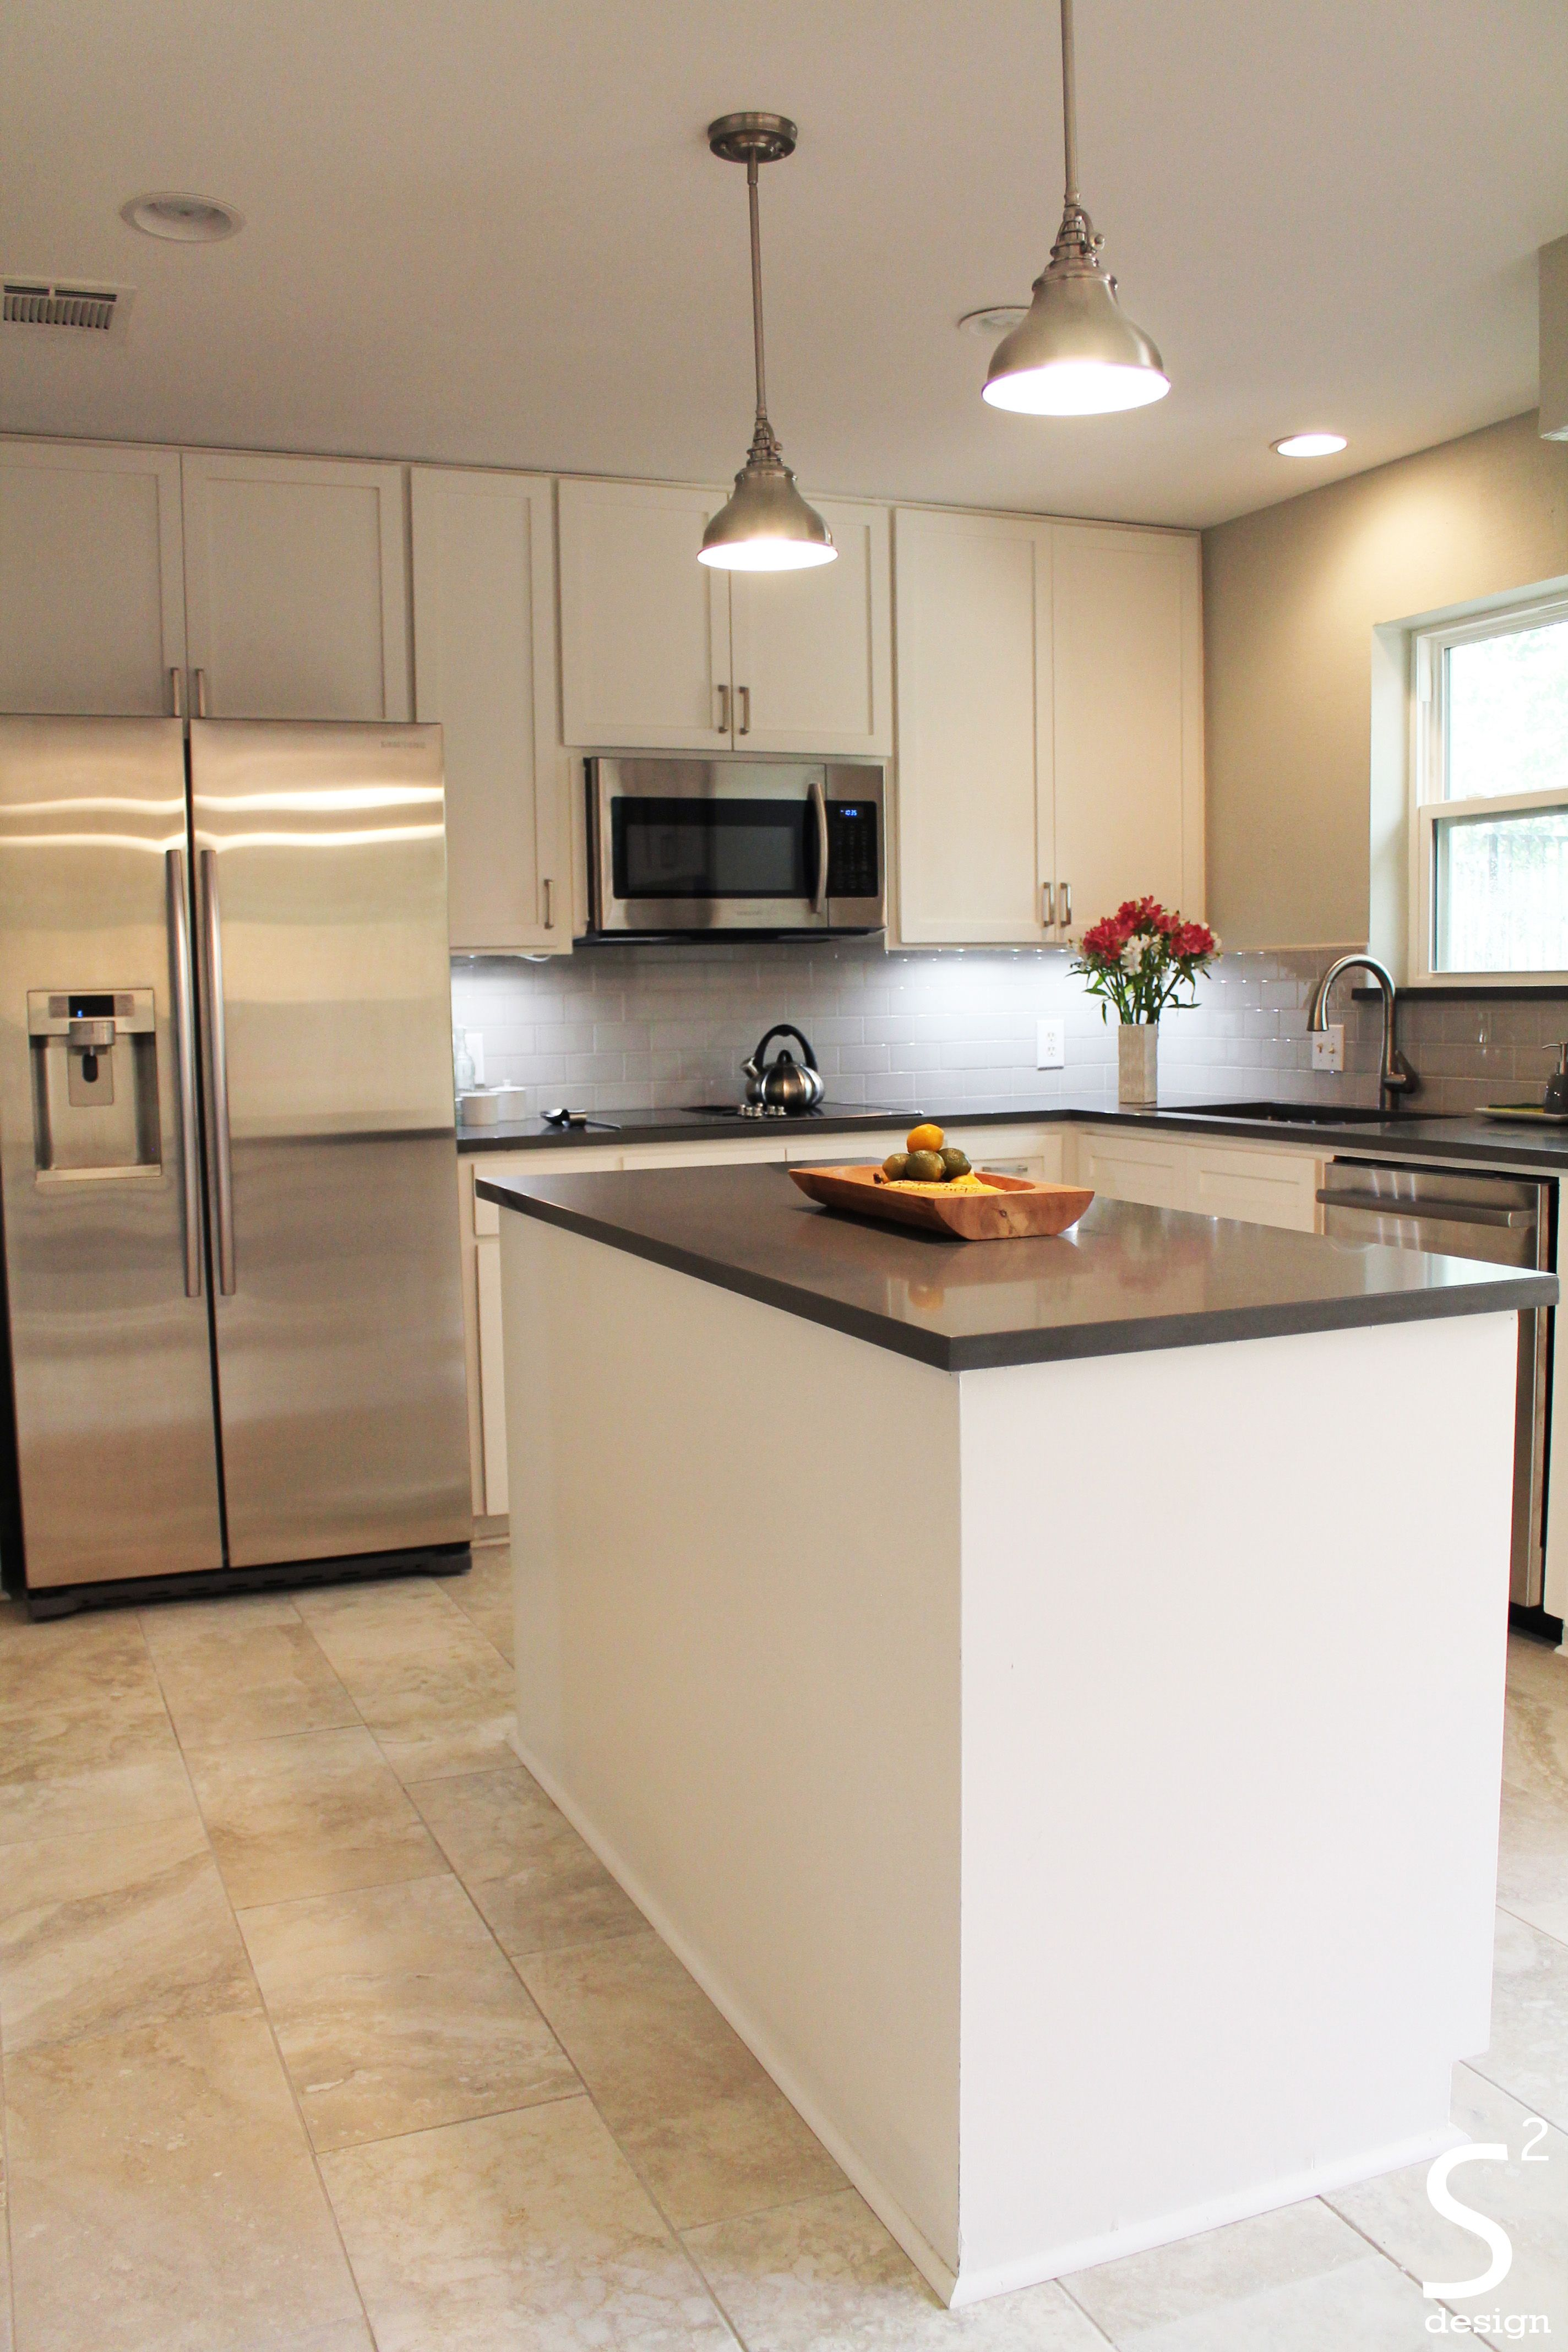 granite depot quartz in well backyard gold mosaic countertops black tiles countertop interior ideas with kitchen tile brick idea white beautiful designs wall gray backsplash crucial cabinet depiction also face split stone as for dark home light grey splitface travertine and pictures cabinets